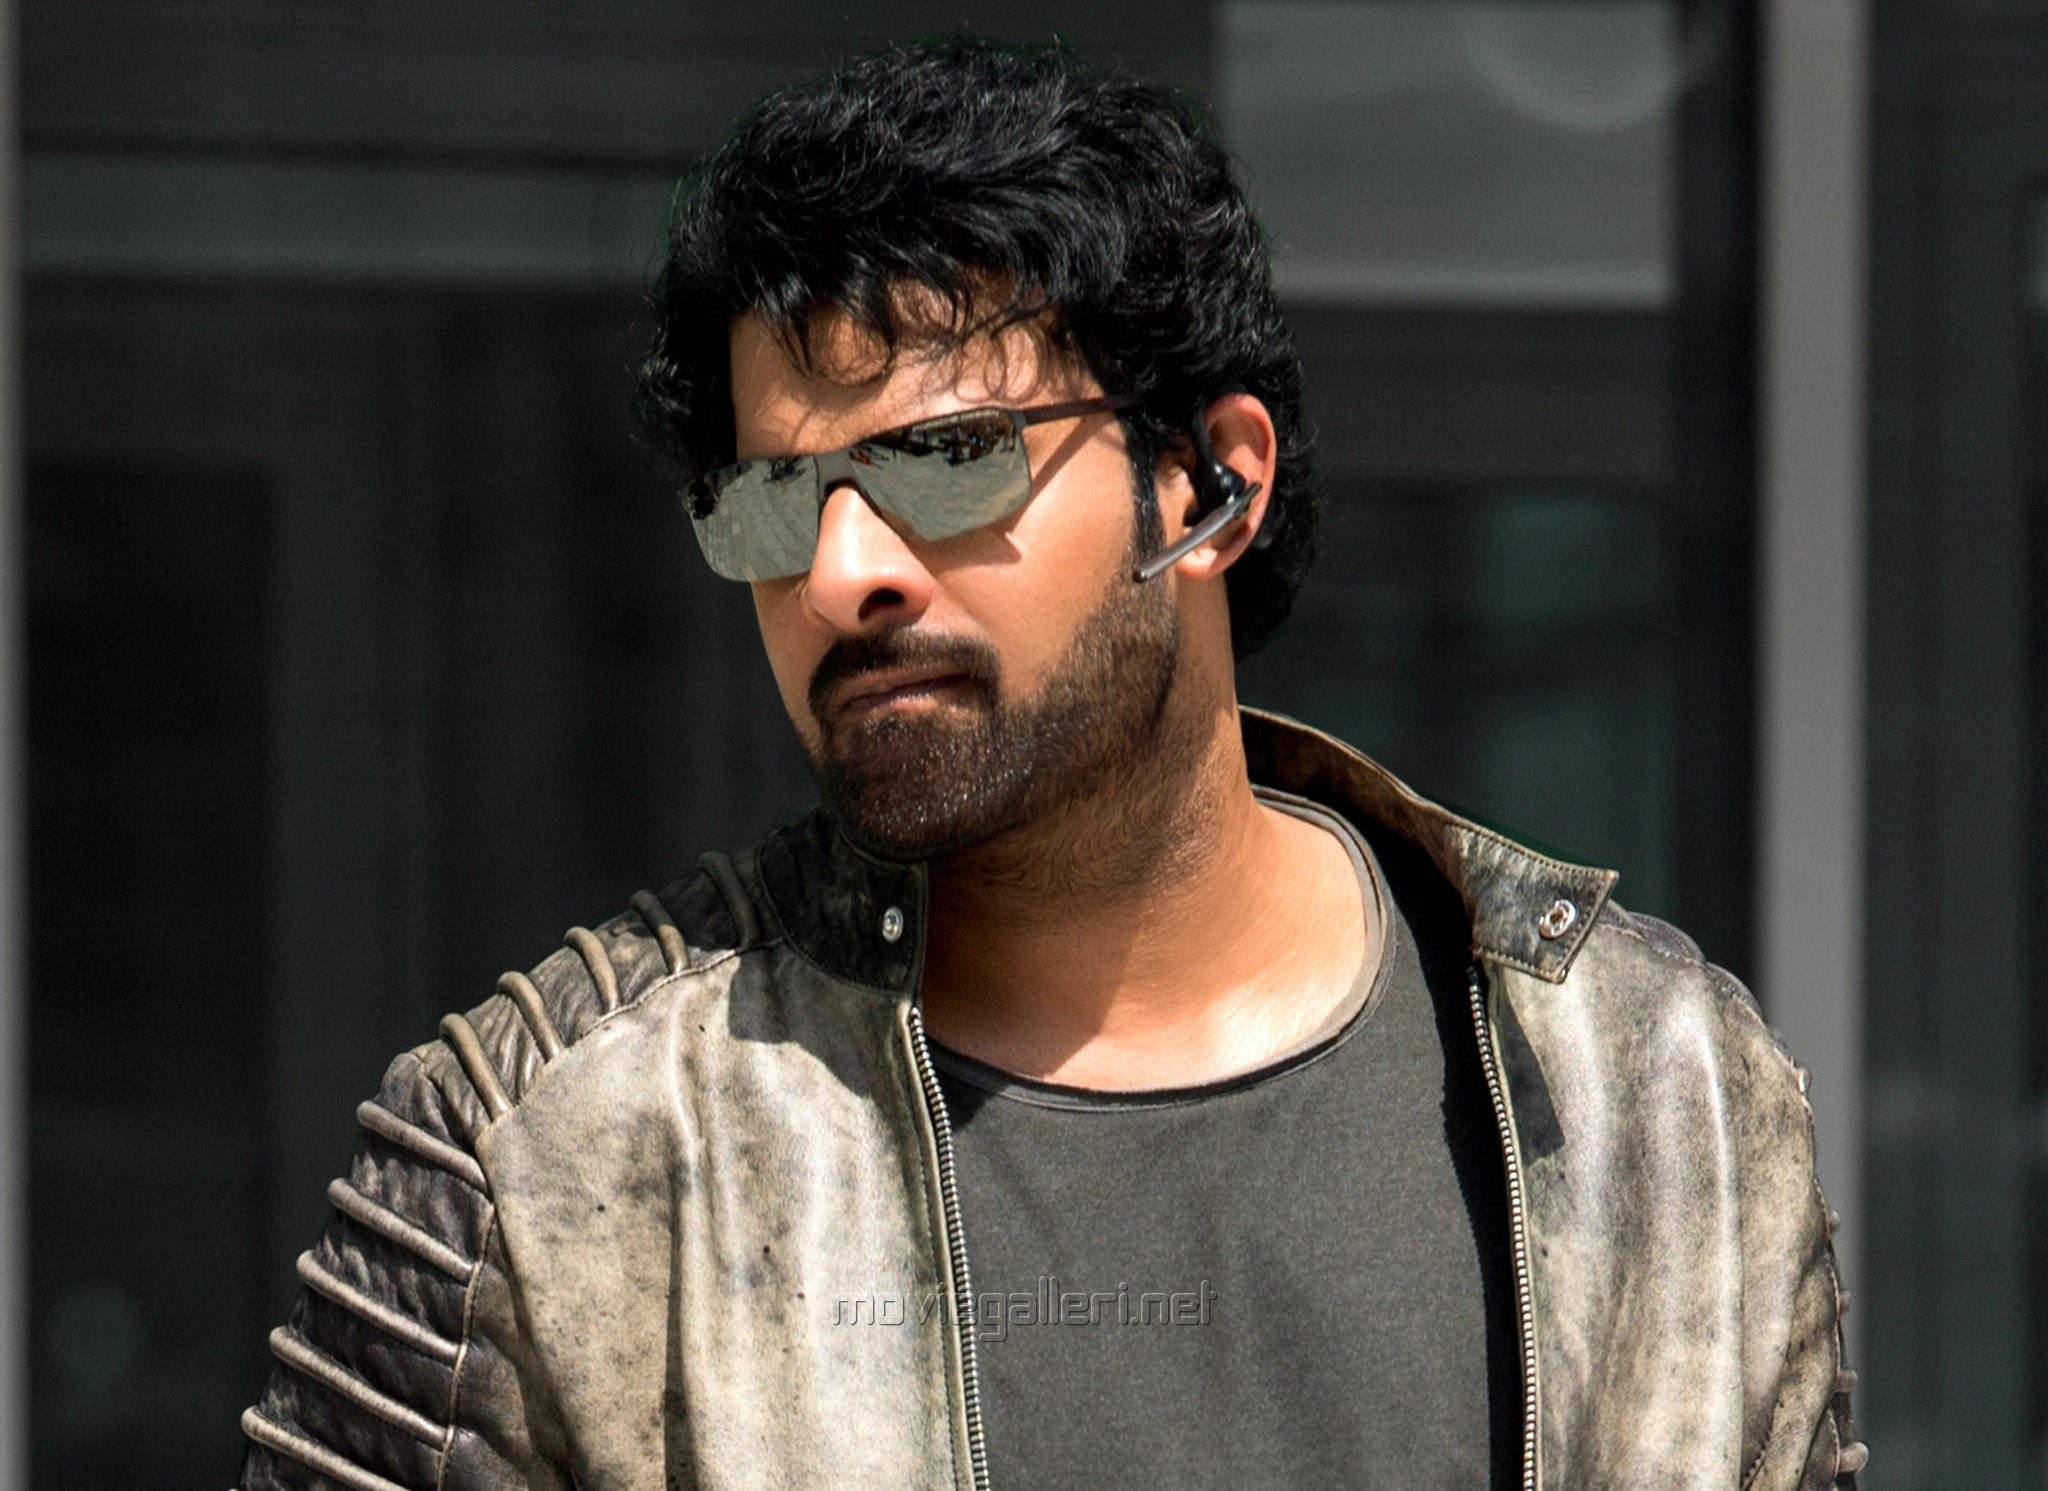 Saaho Prabhas Images Hd | Prabhas Saaho Movie Images Hd | New Movie Posters